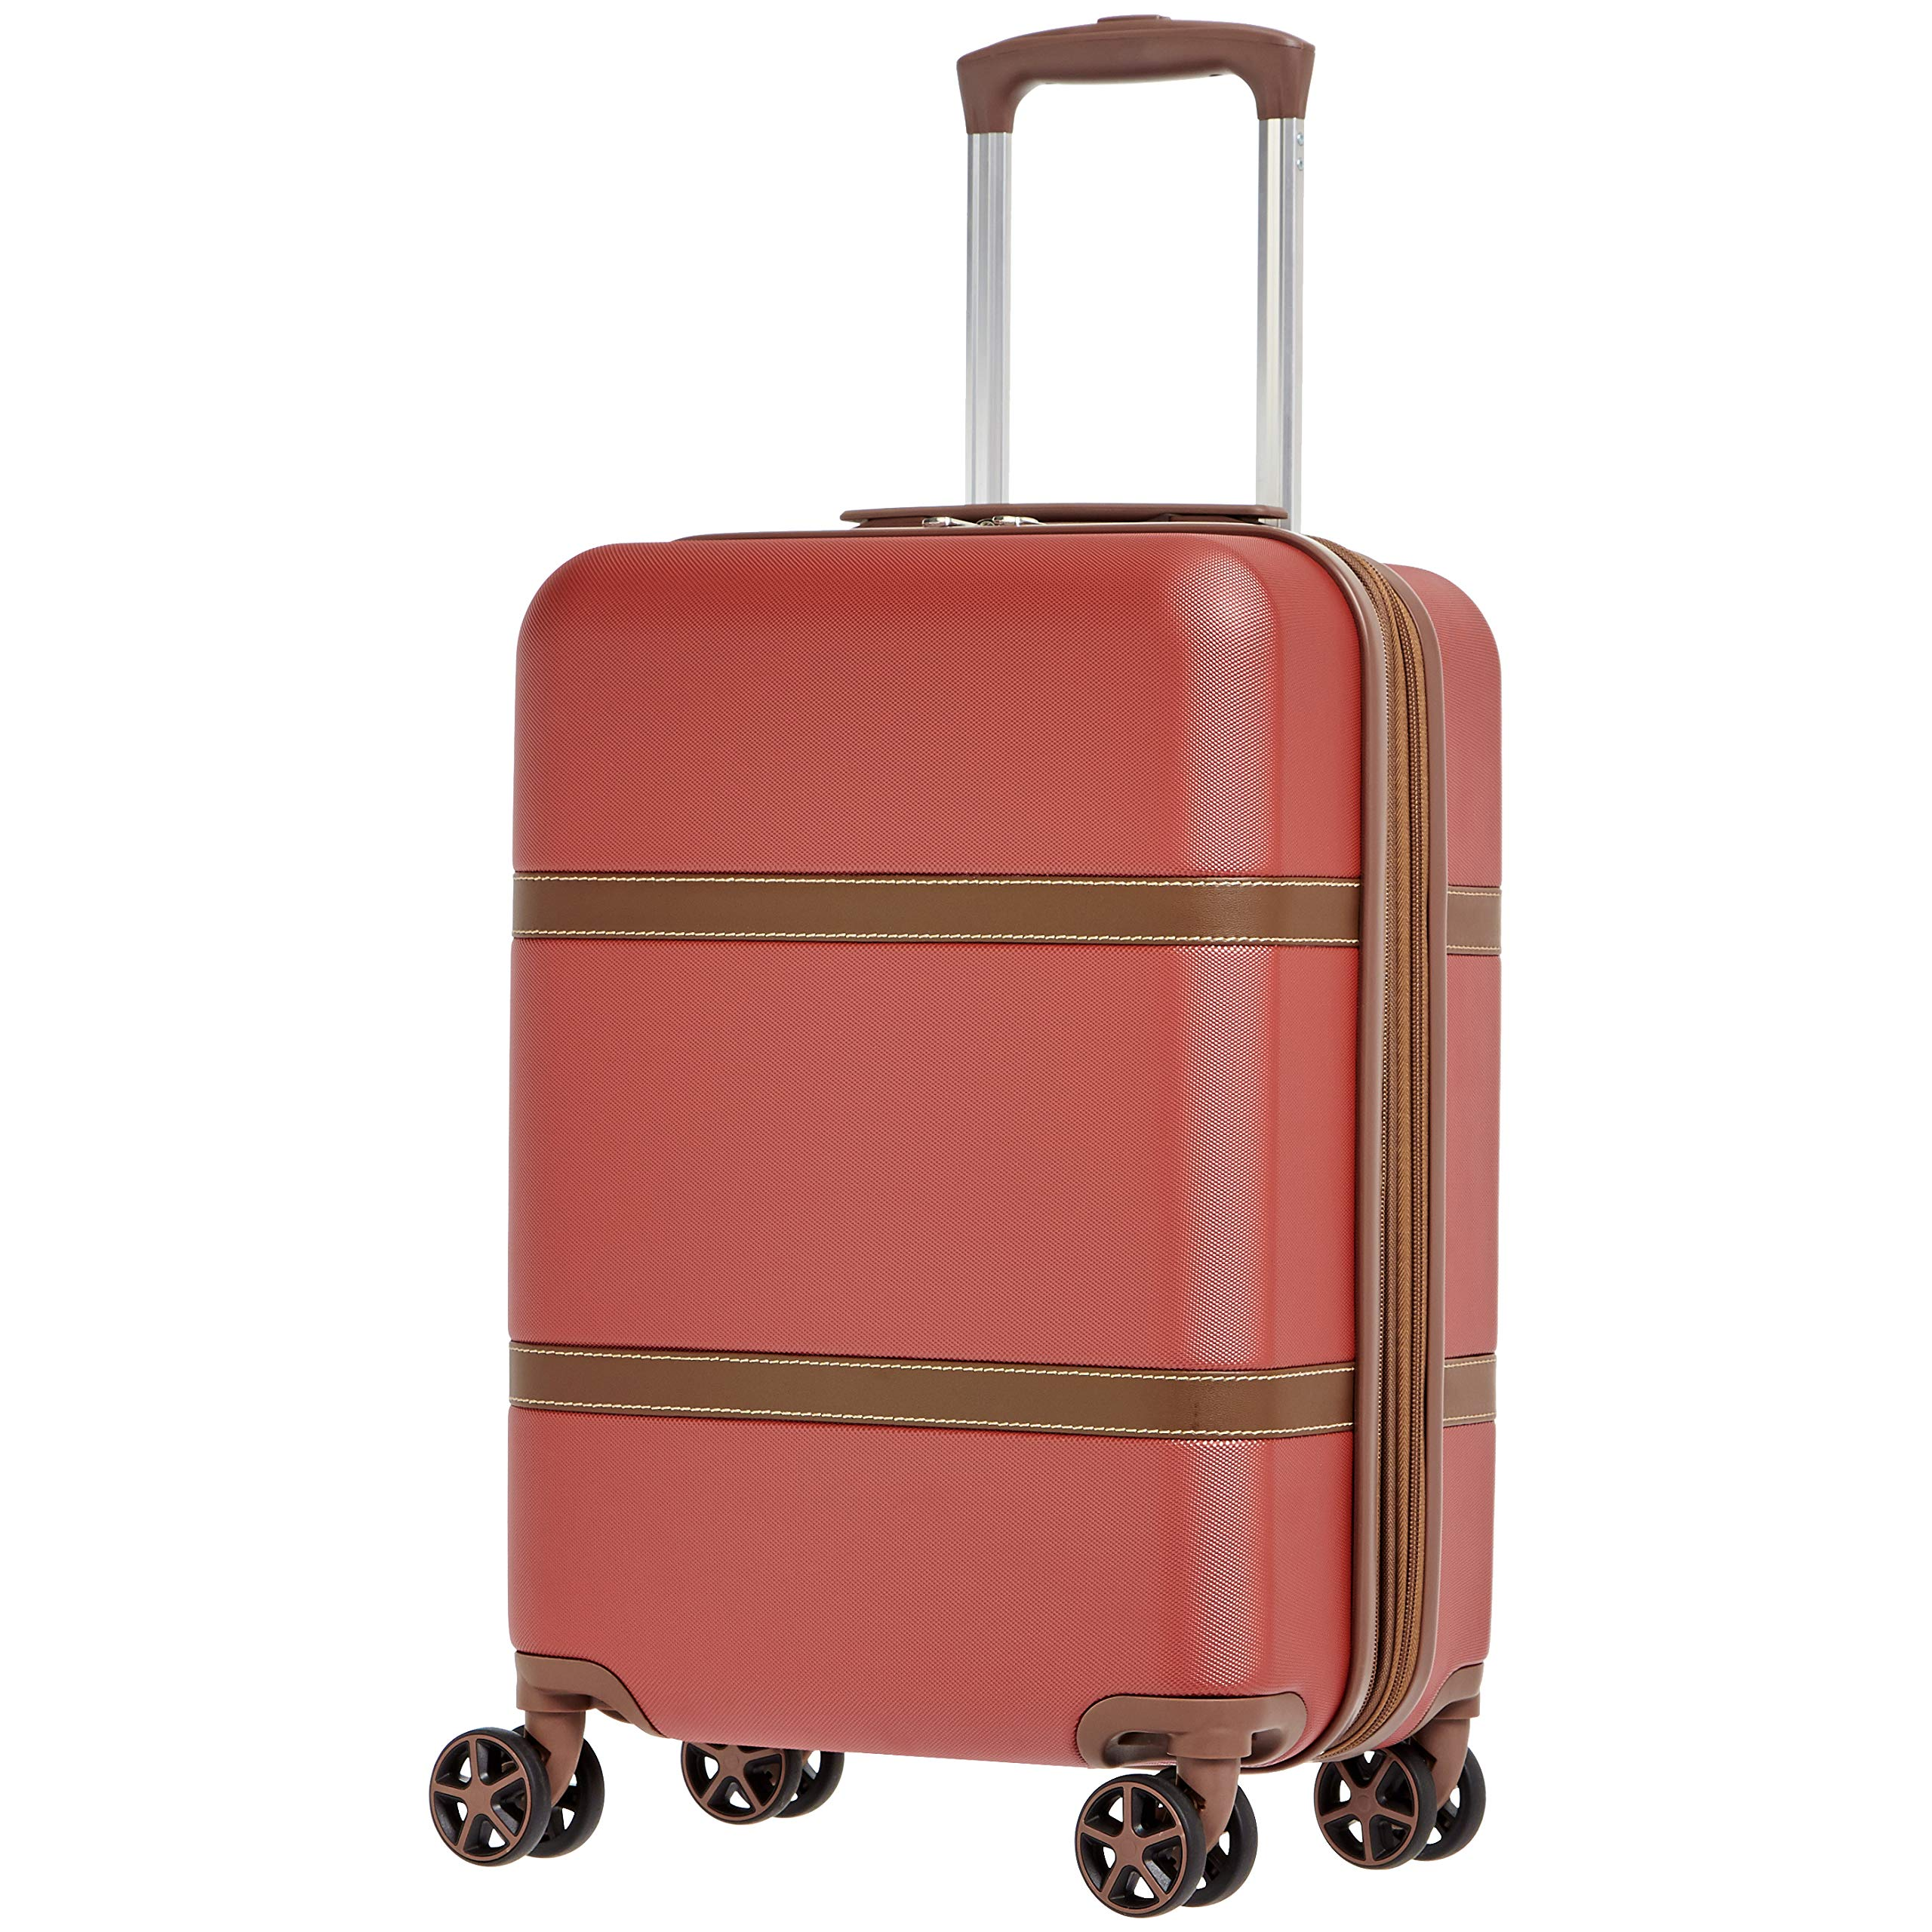 AmazonBasics Vienna Expandable Carry-On Luggage Spinner Suitcase - 20 Inch, Red